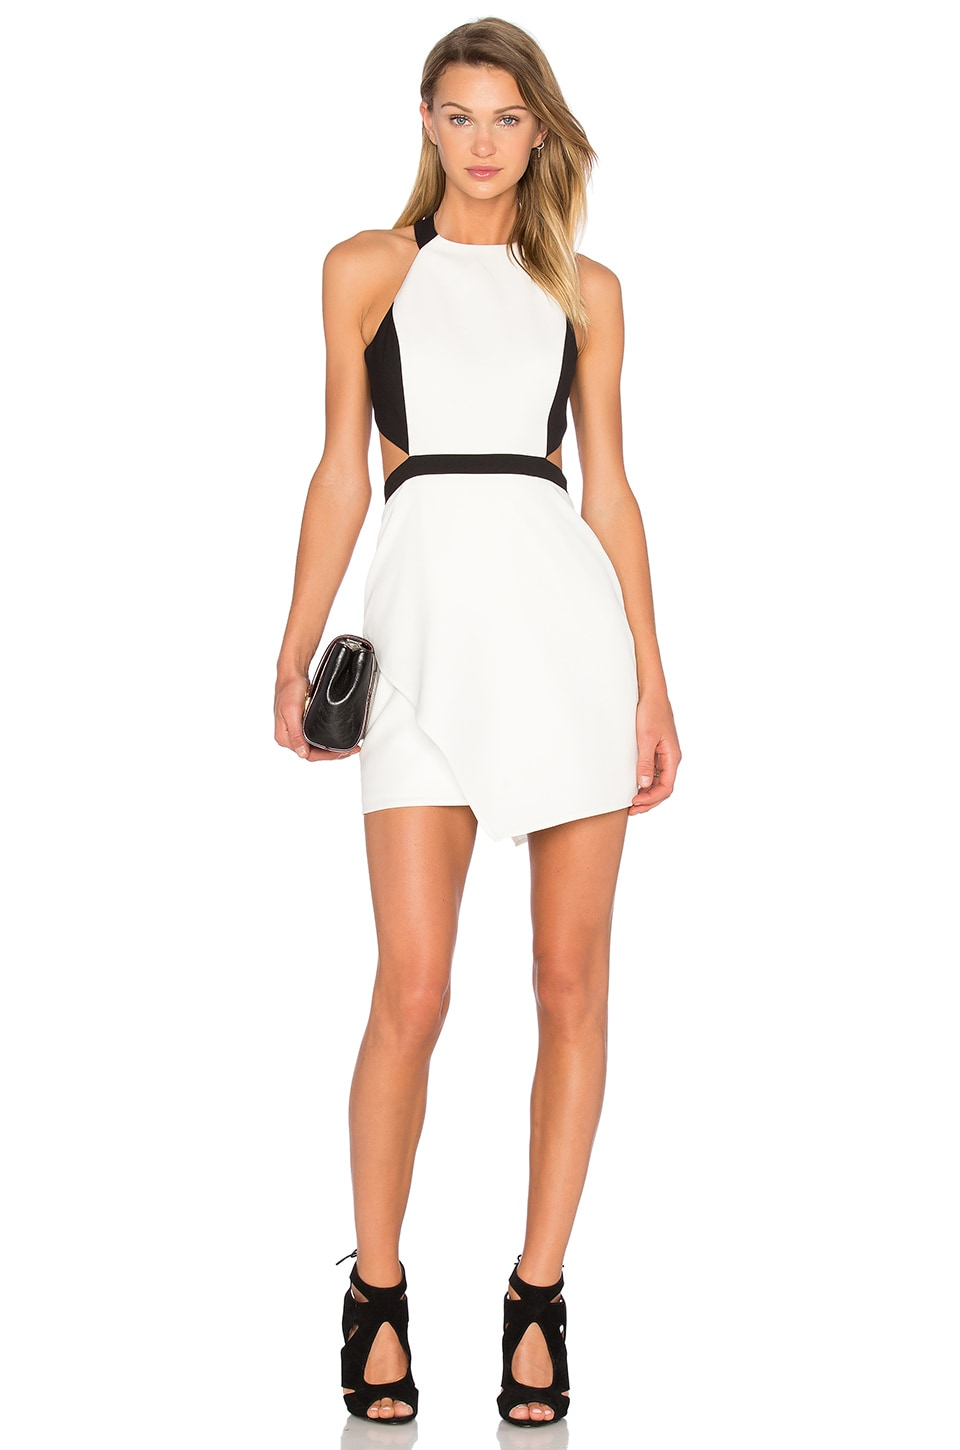 NBD X Naven Twins VIP MVP Cutout Bodycon Dress in Black & White